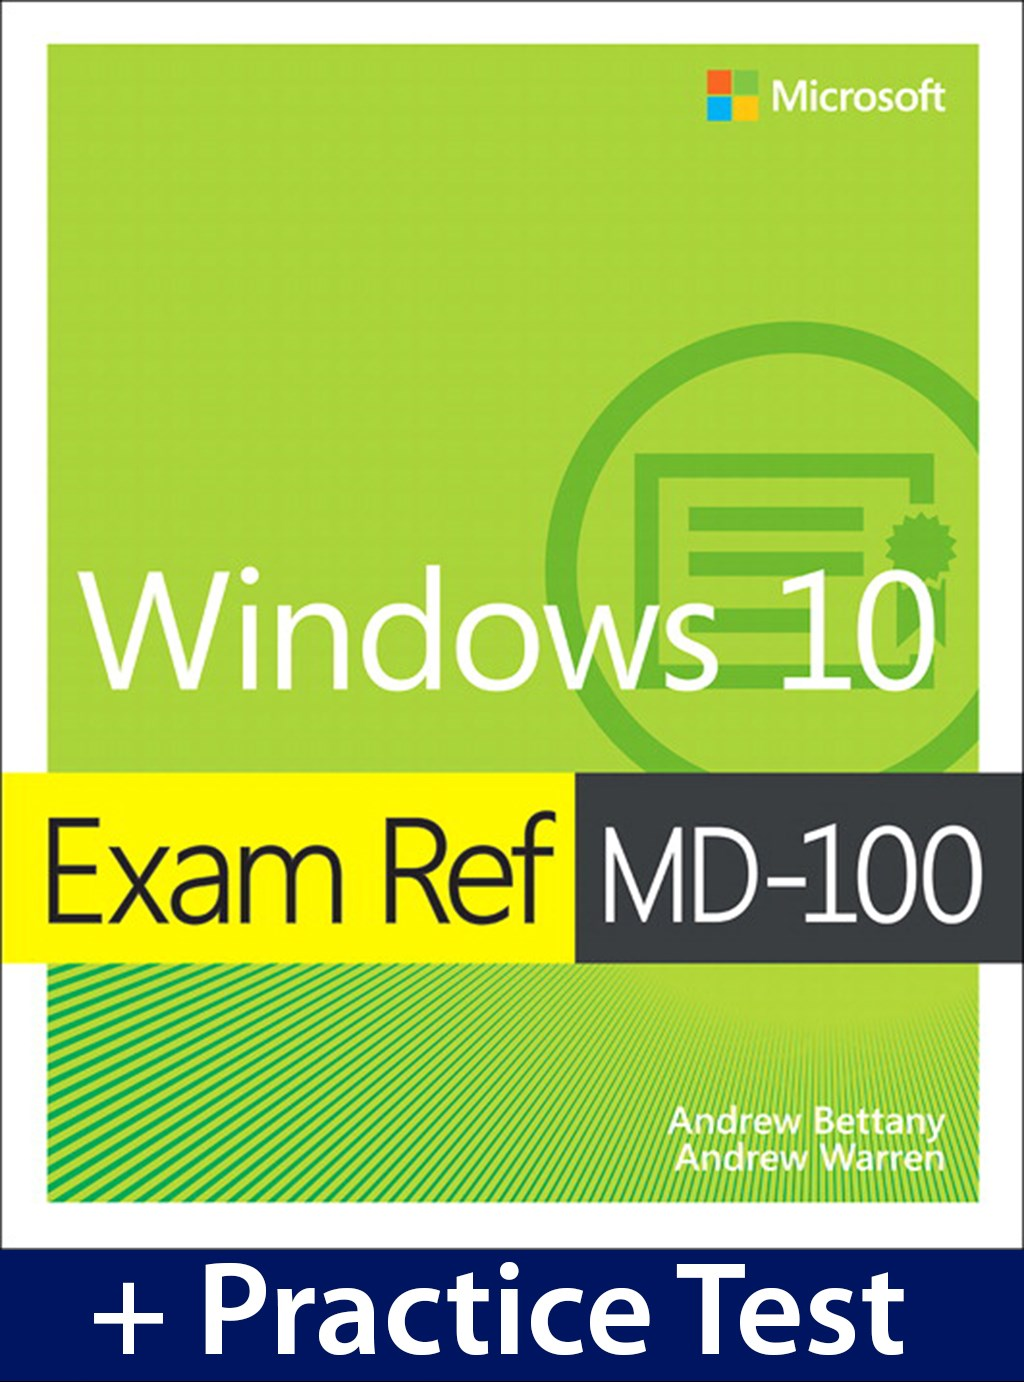 Exam Ref MD-100 Windows 10 with Practice Test